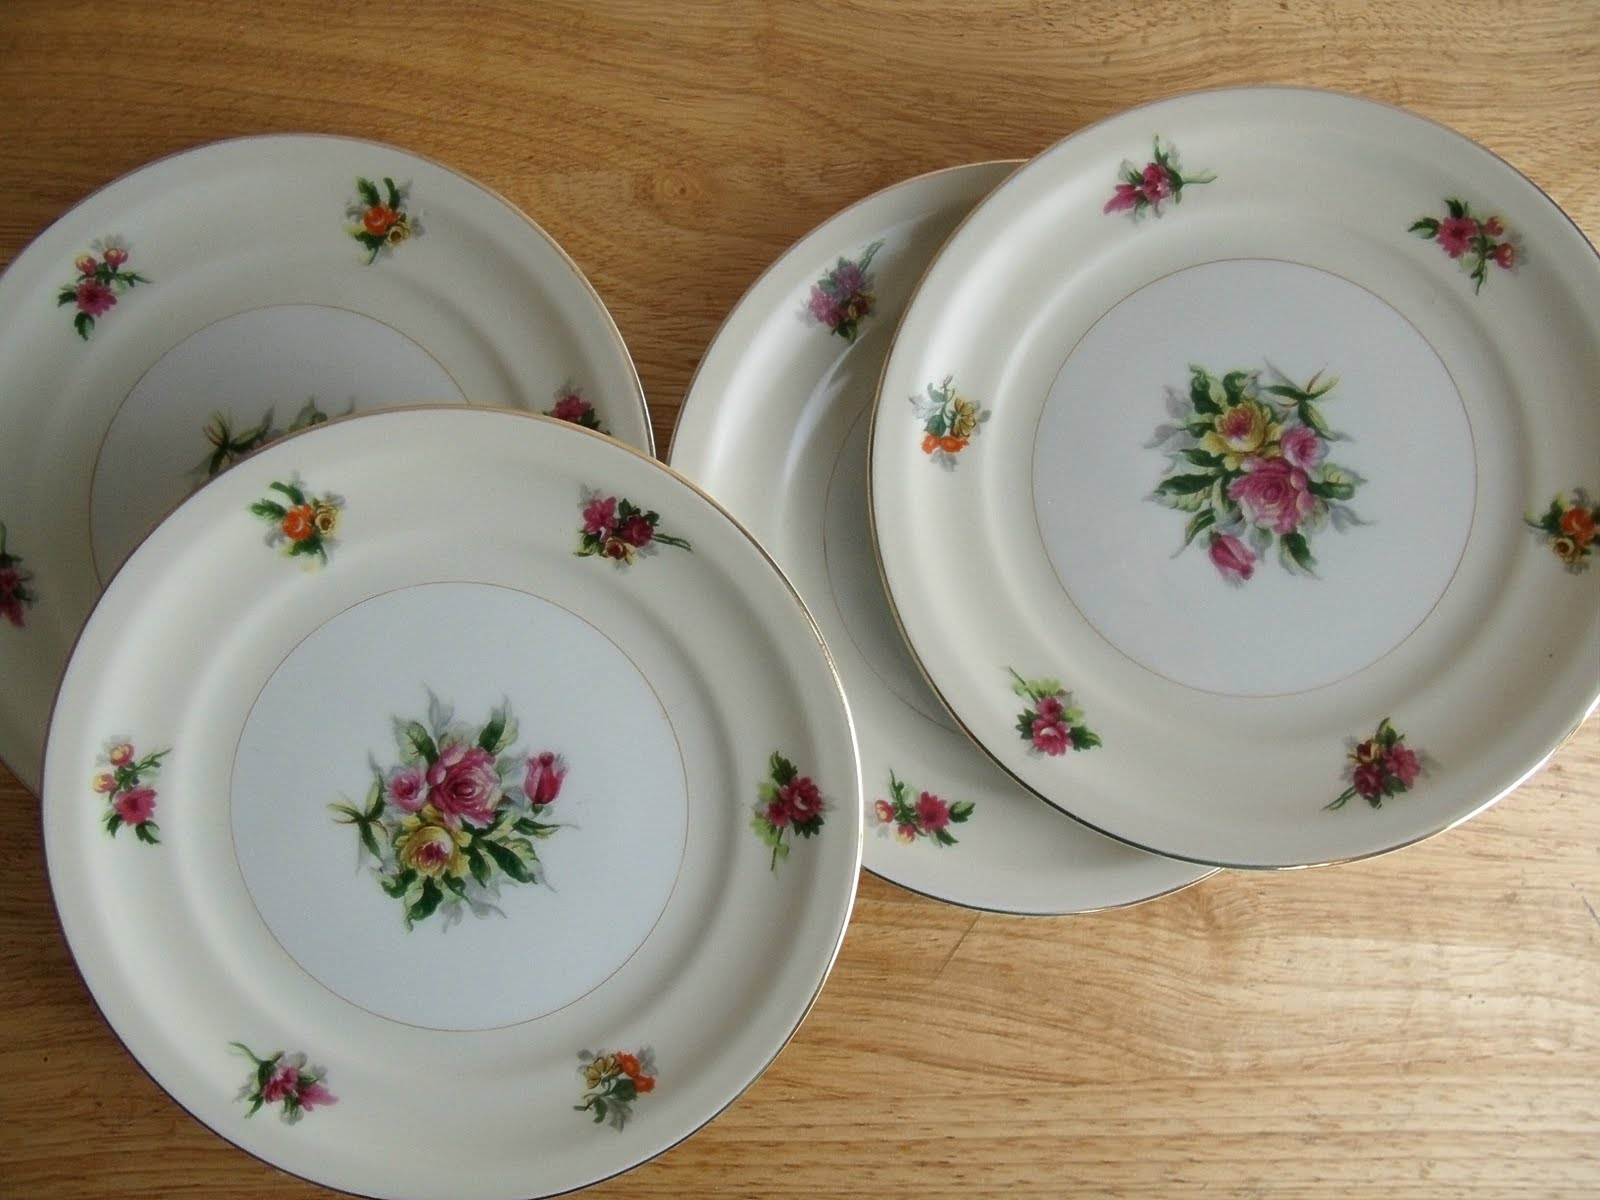 Understated elegance is the only way I can describe these floral bread/dessert plates Made In Japan by Meito China Ivory China which is what it reads on the ... & Meito China Ivory China Plate Set of Four